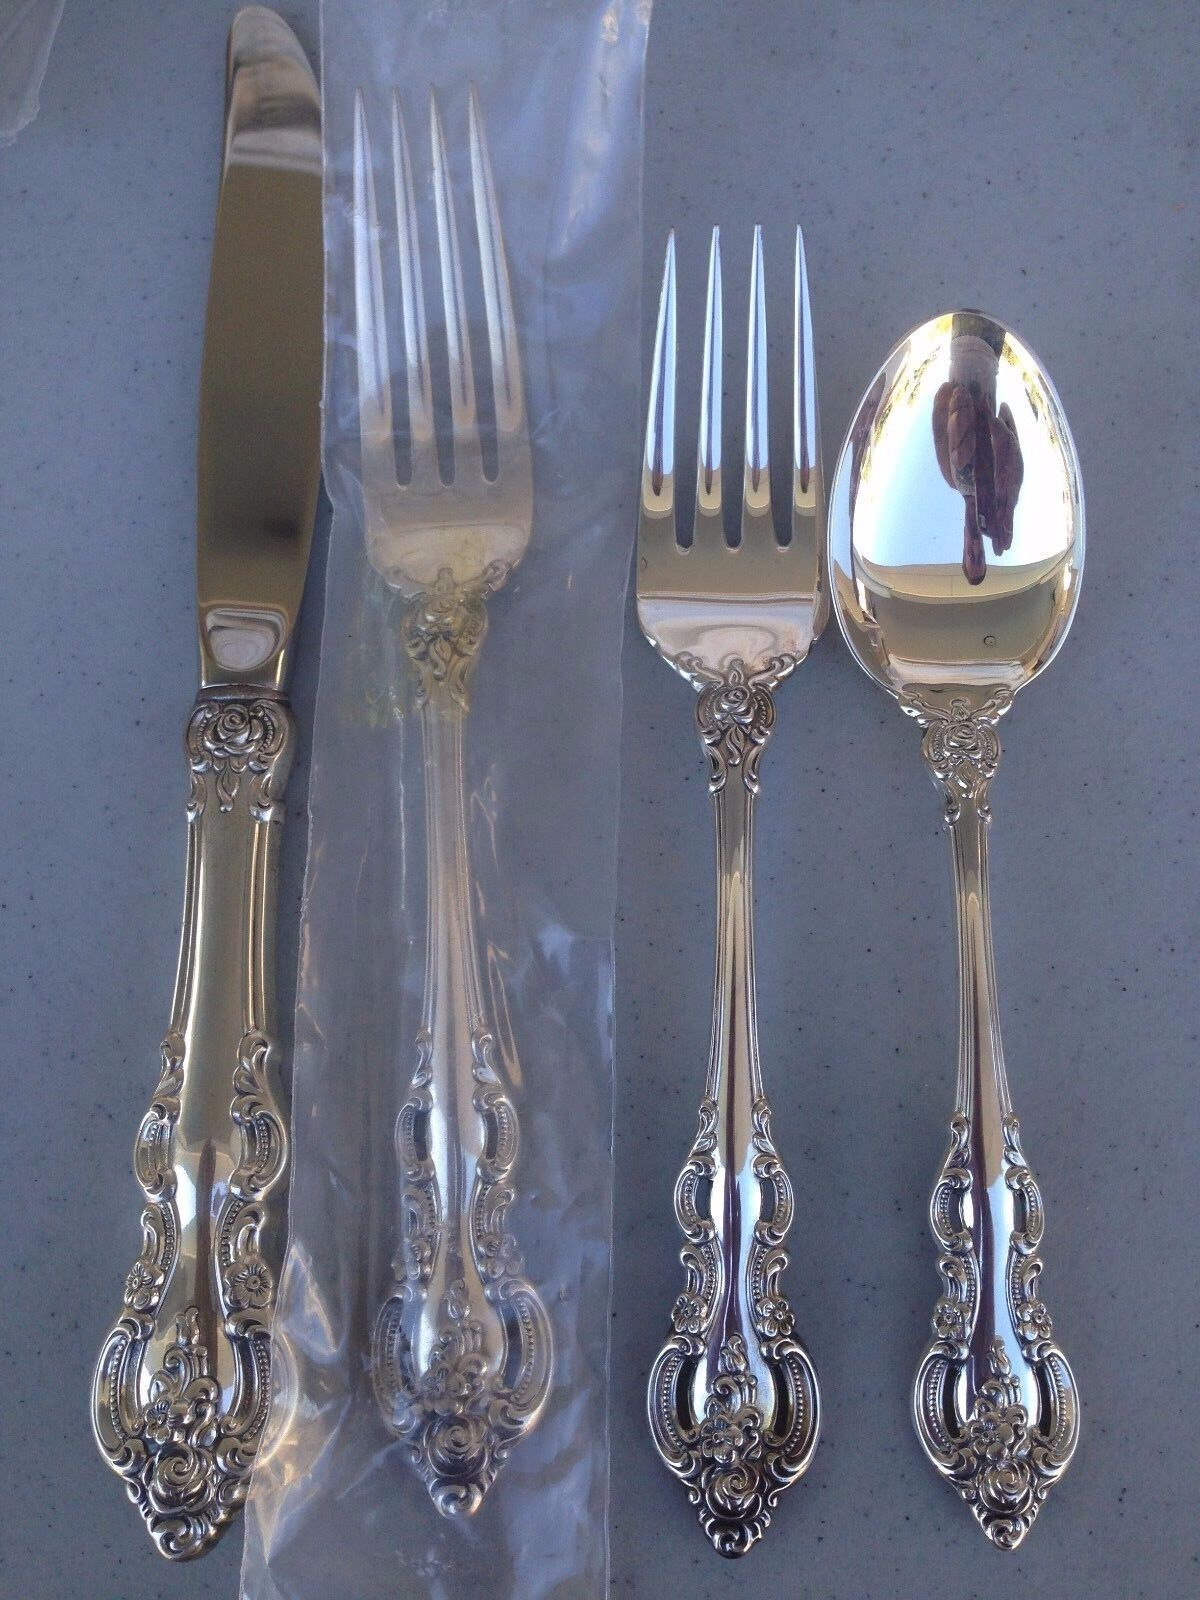 CLEAN HEAVY 4 PC TOWLE EL GRANDEE STERLING SILVER FLATWARE SETTING SETTINGS